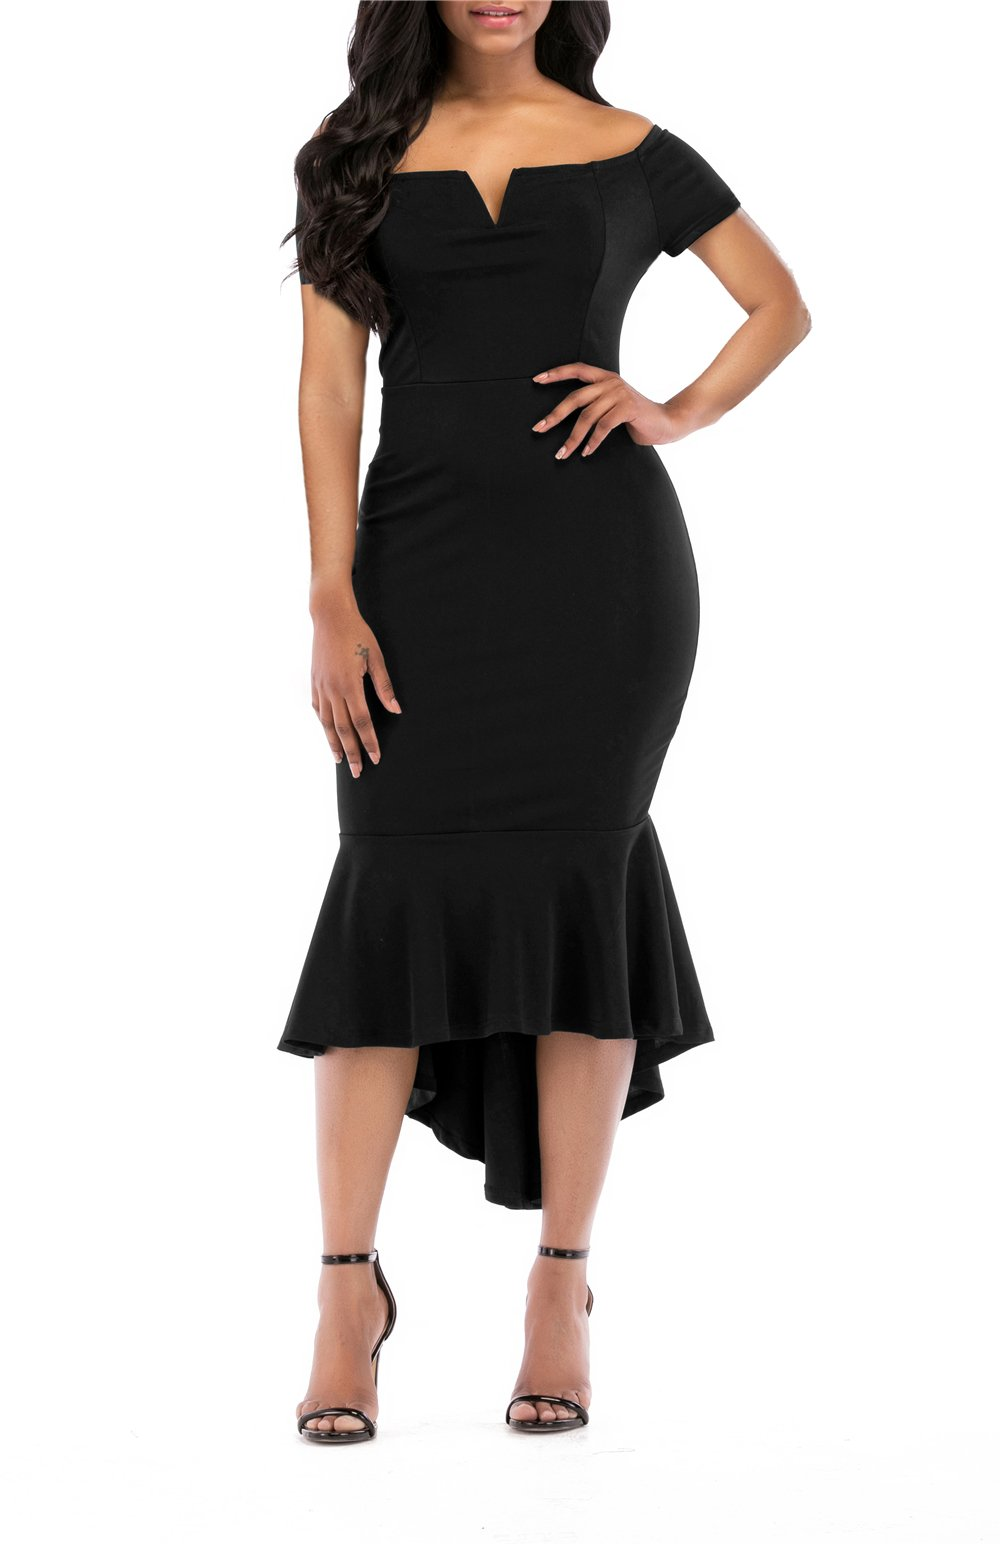 onlypuff Fishtail Dresses for Women Midi Bodycon Dress Long Sleeve V Neck Cocktail Dress (Large, S-Black) by onlypuff